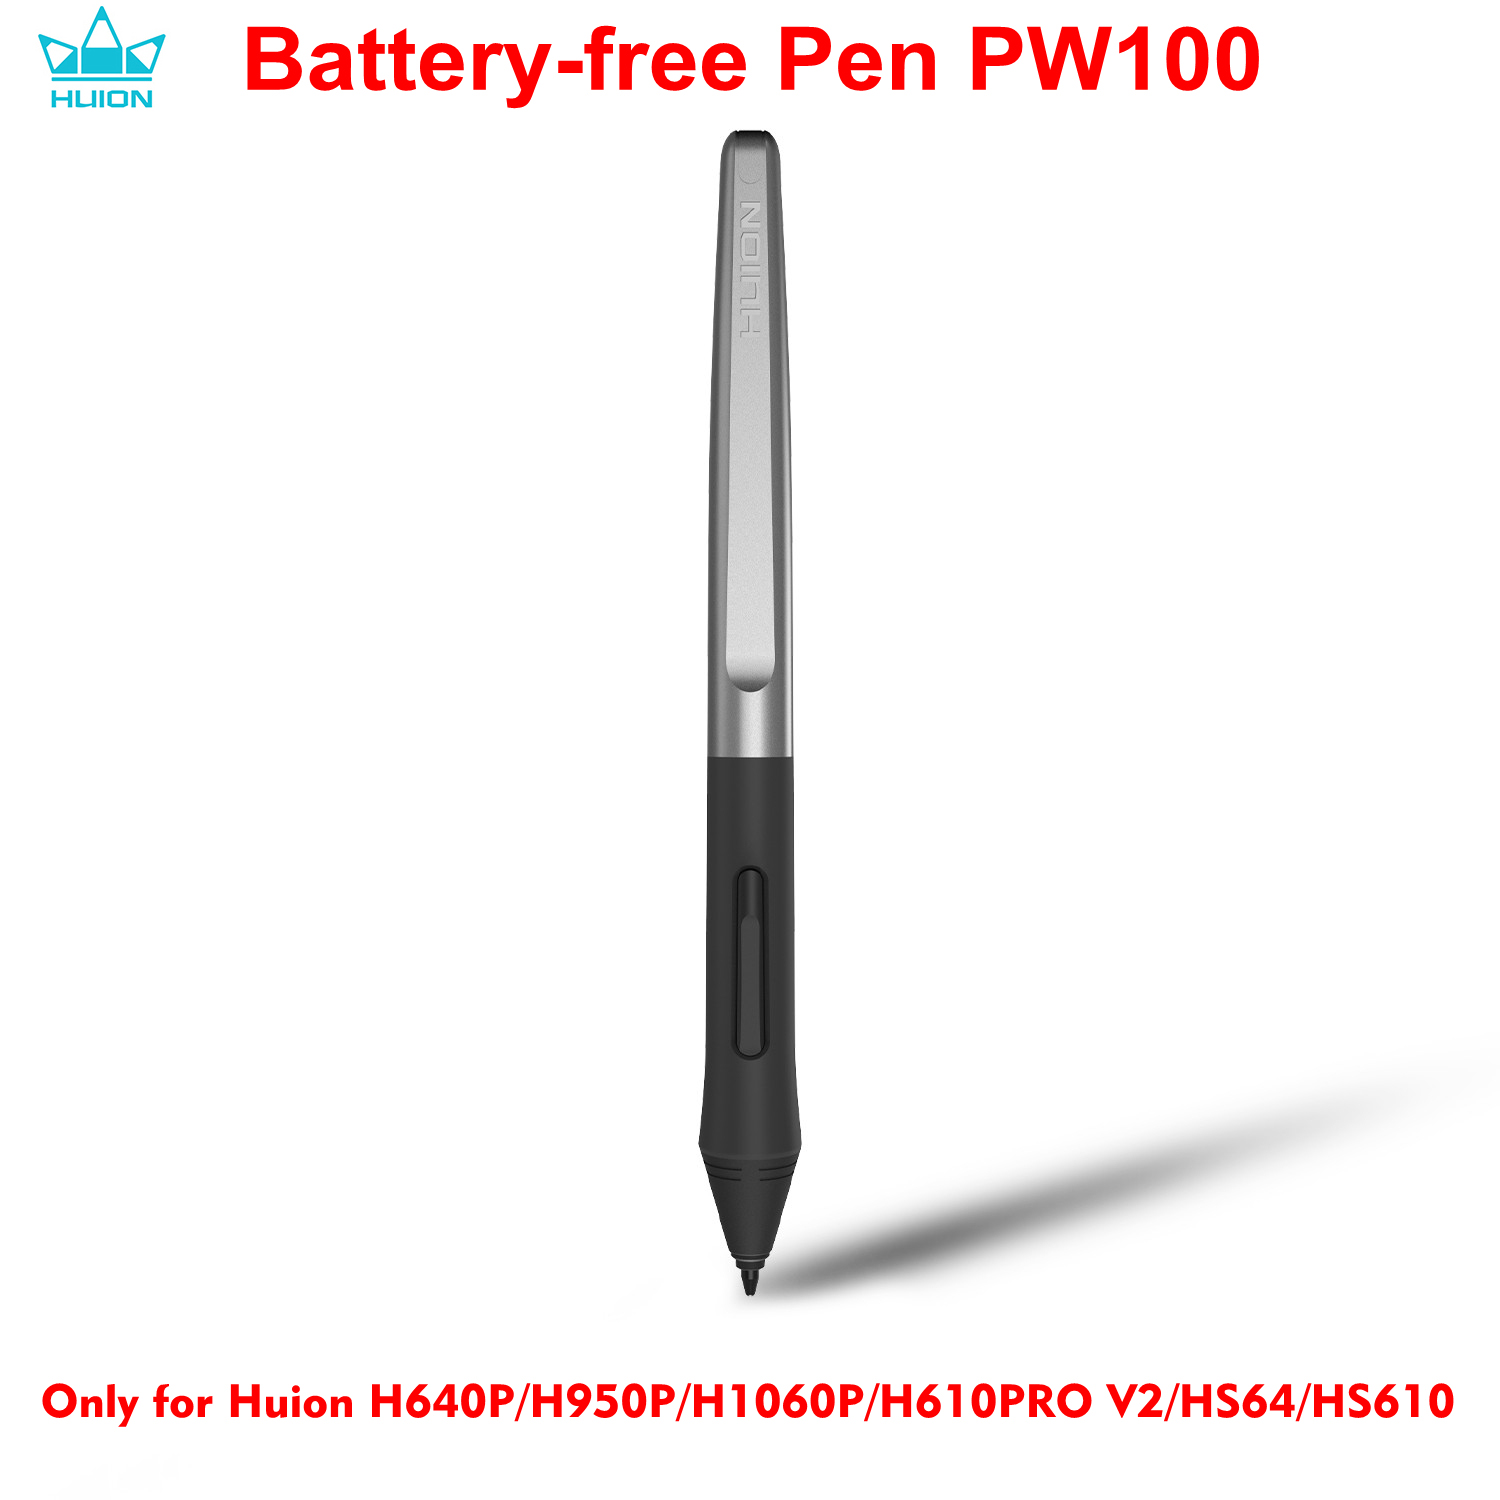 HUION Battery-free Stylus Pen PW100 for HUION H640P/ H950P/ H1060P/ H610PRO V2/ <font><b>HS64</b></font>/ HS610 Digital Graphic Drawing Tablets image